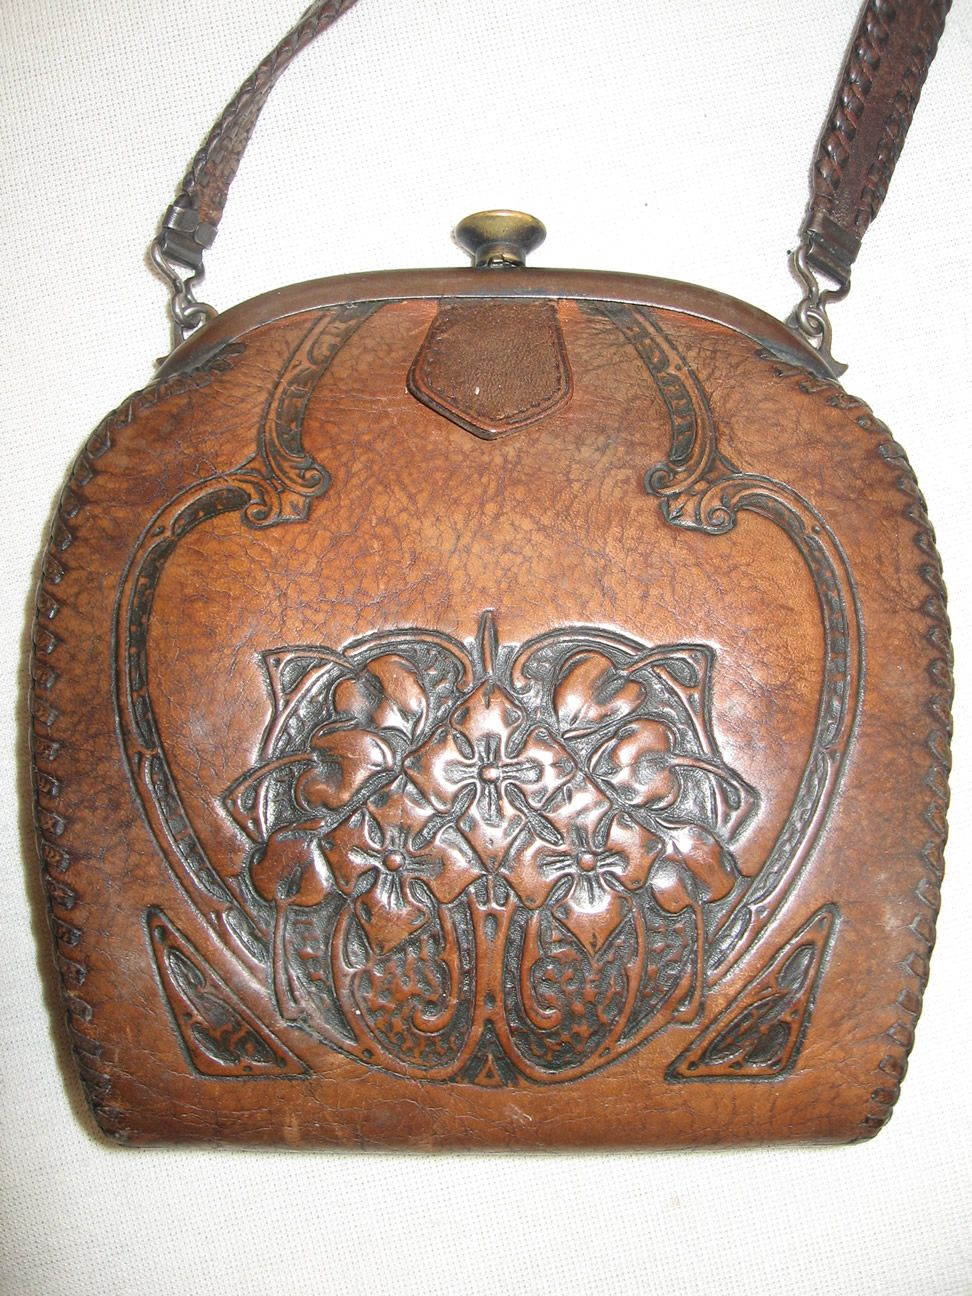 """Vintage Purse News:  These Purses Give An """"Old West"""" Look That's C:O:O:L"""